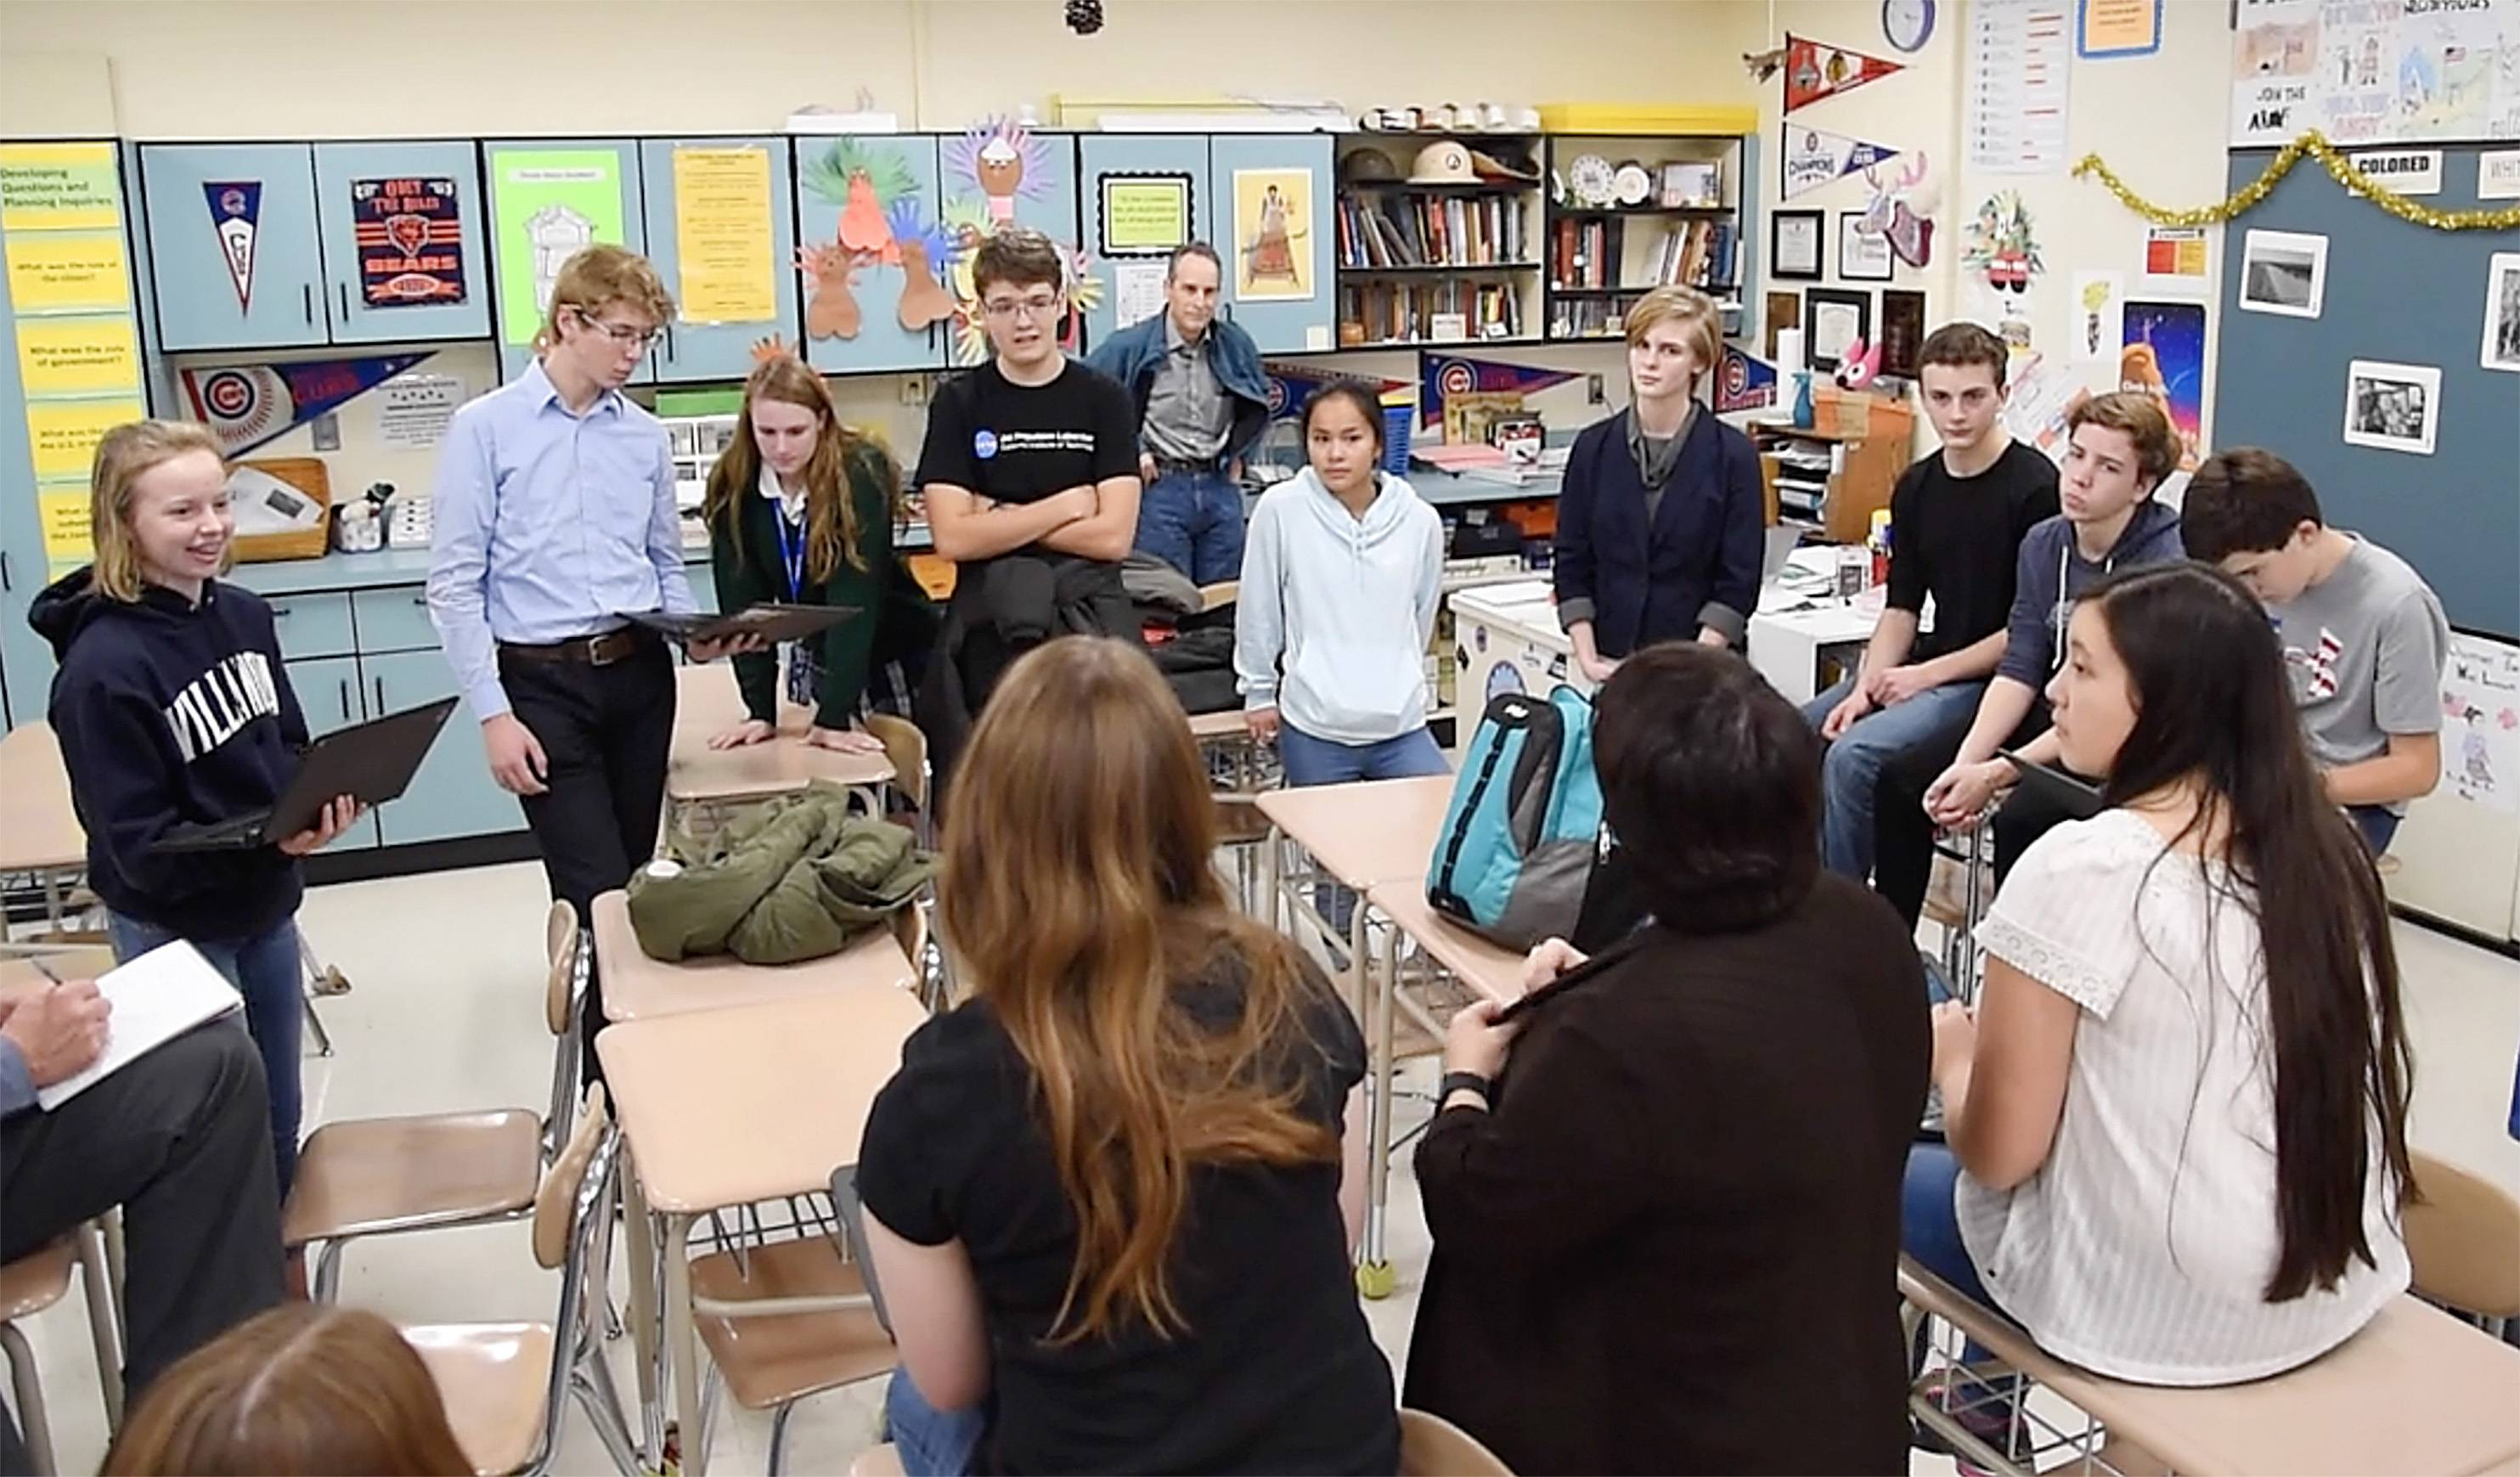 What grew out of a discussion about the Vietnam War turned into a life-changing project for some of the eighth-graders in teacher Julia Schaeffer's social studies class at Rotolo Middle School in Batavia. Kids who started that effort are now juniors in high school.